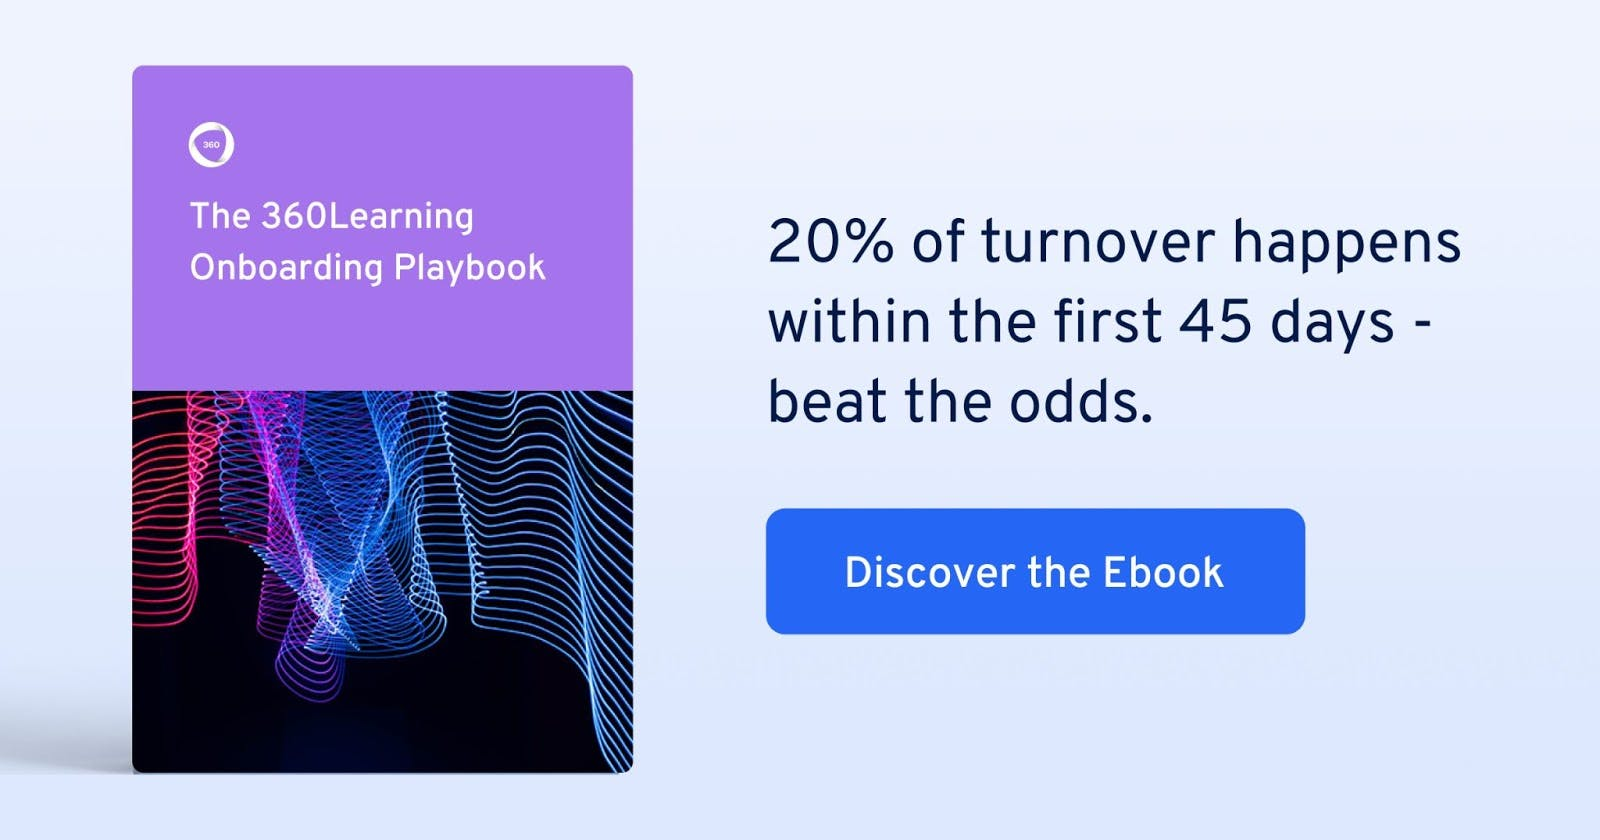 Onboarding Playbook